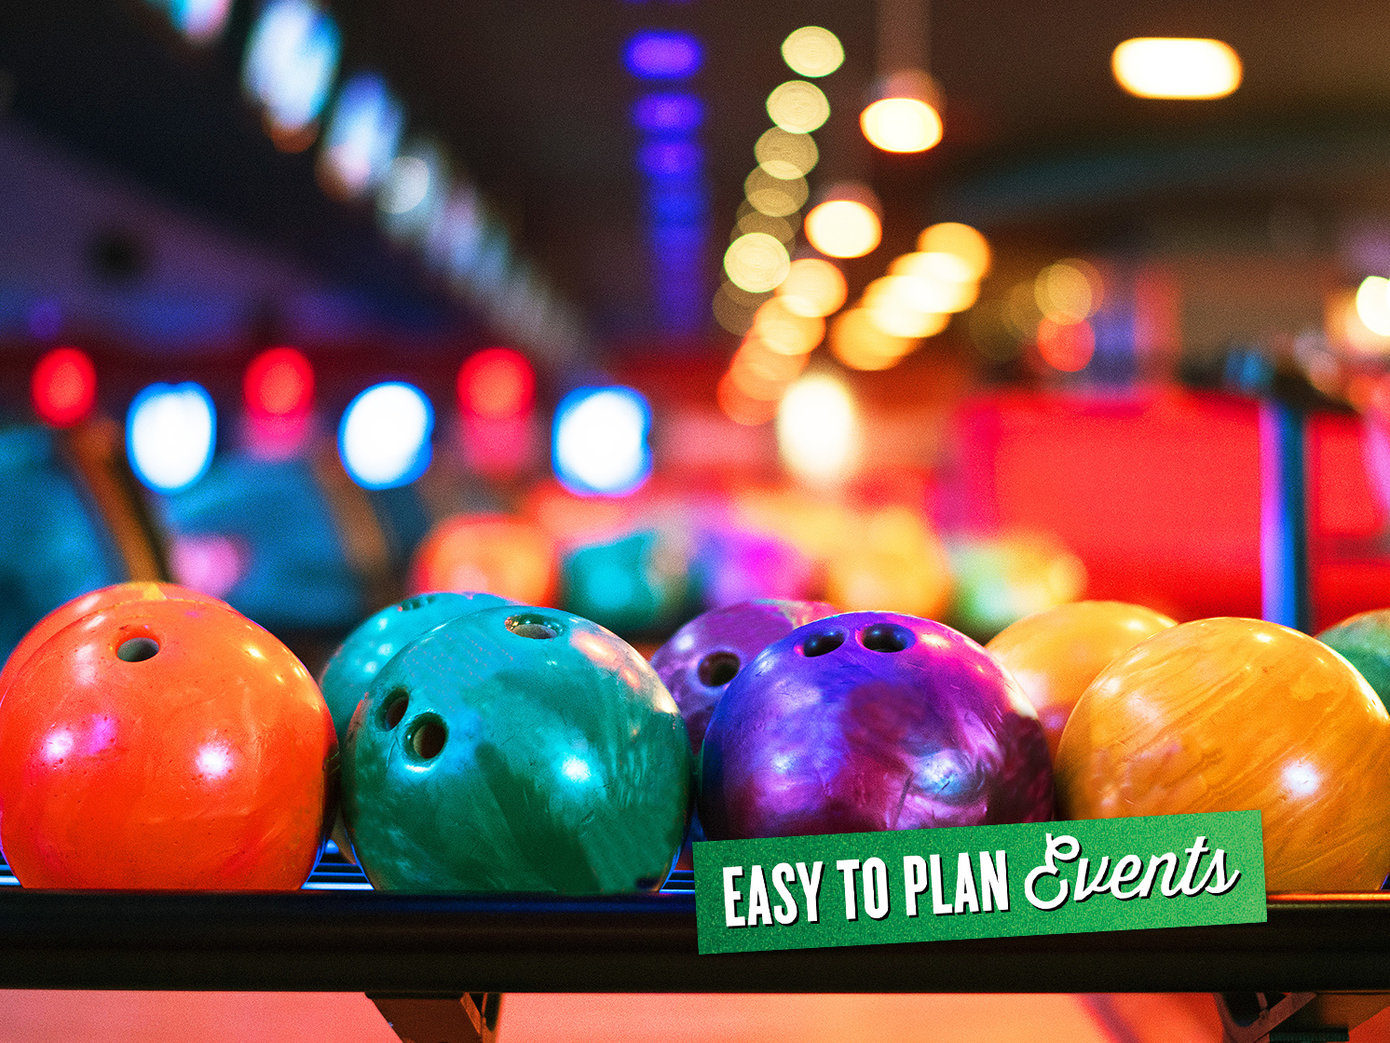 Ball return with bowling balls. 'Easy to Plan Events' is written on top in green foil.